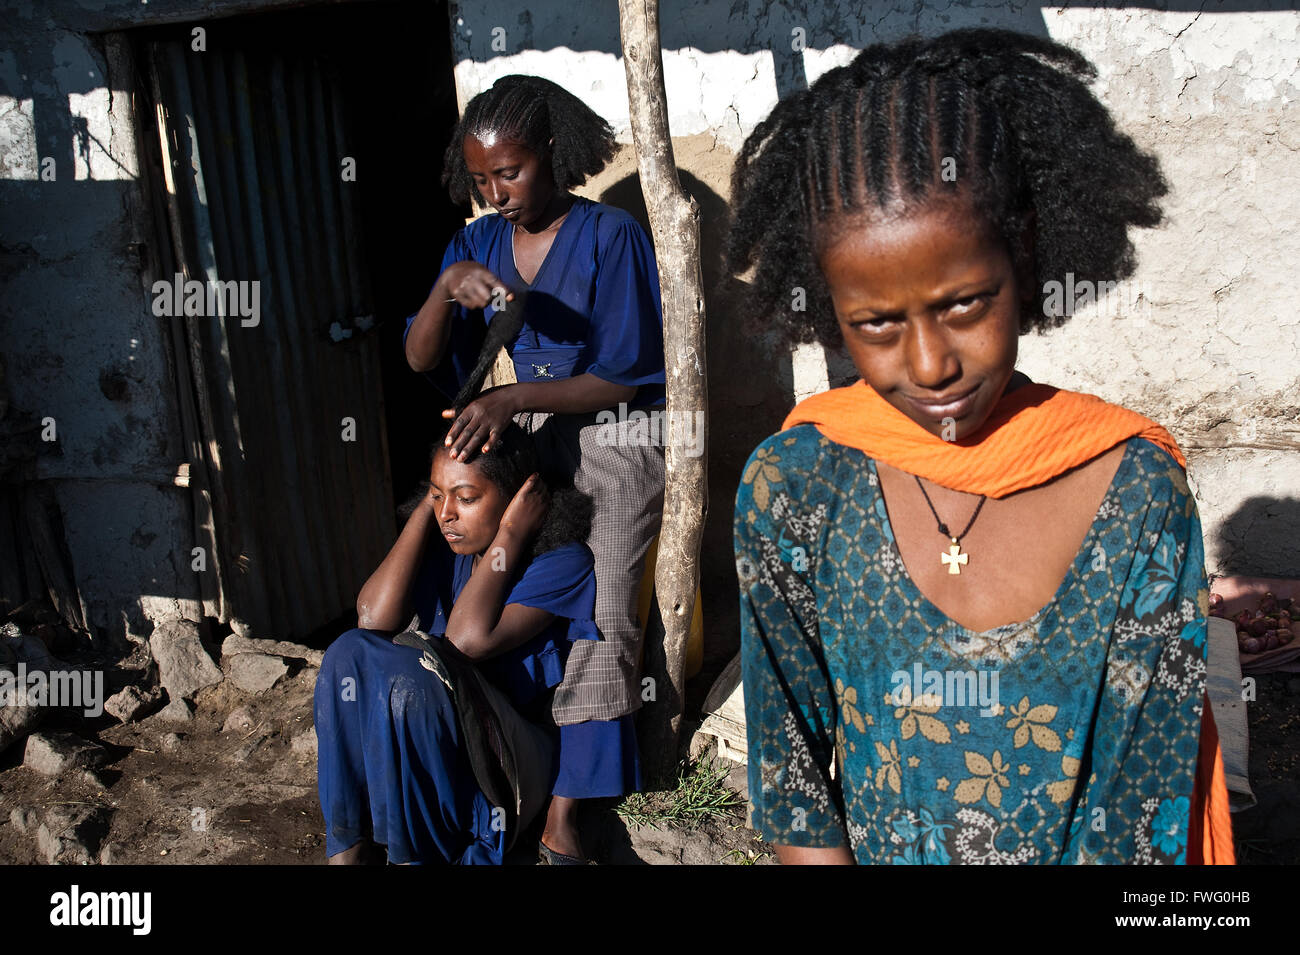 A young woman is combing her sister. In the foreground, a teenage girl with traditional haircut is watching the - Stock Image